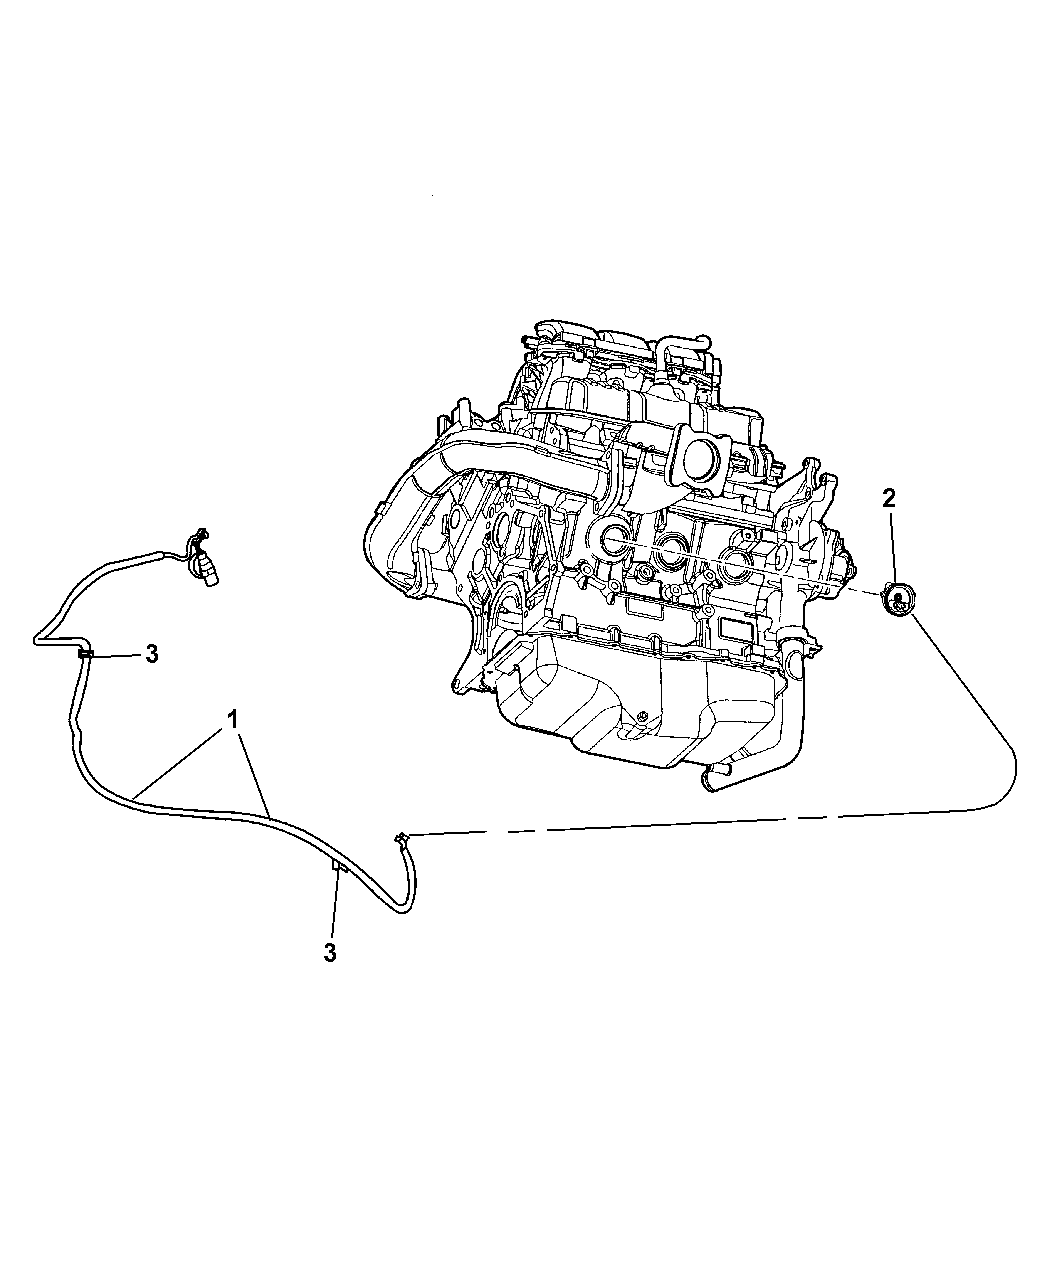 2008 Dodge Grand Caravan Engine Cylinder Block Heater Diagram Thumbnail 2